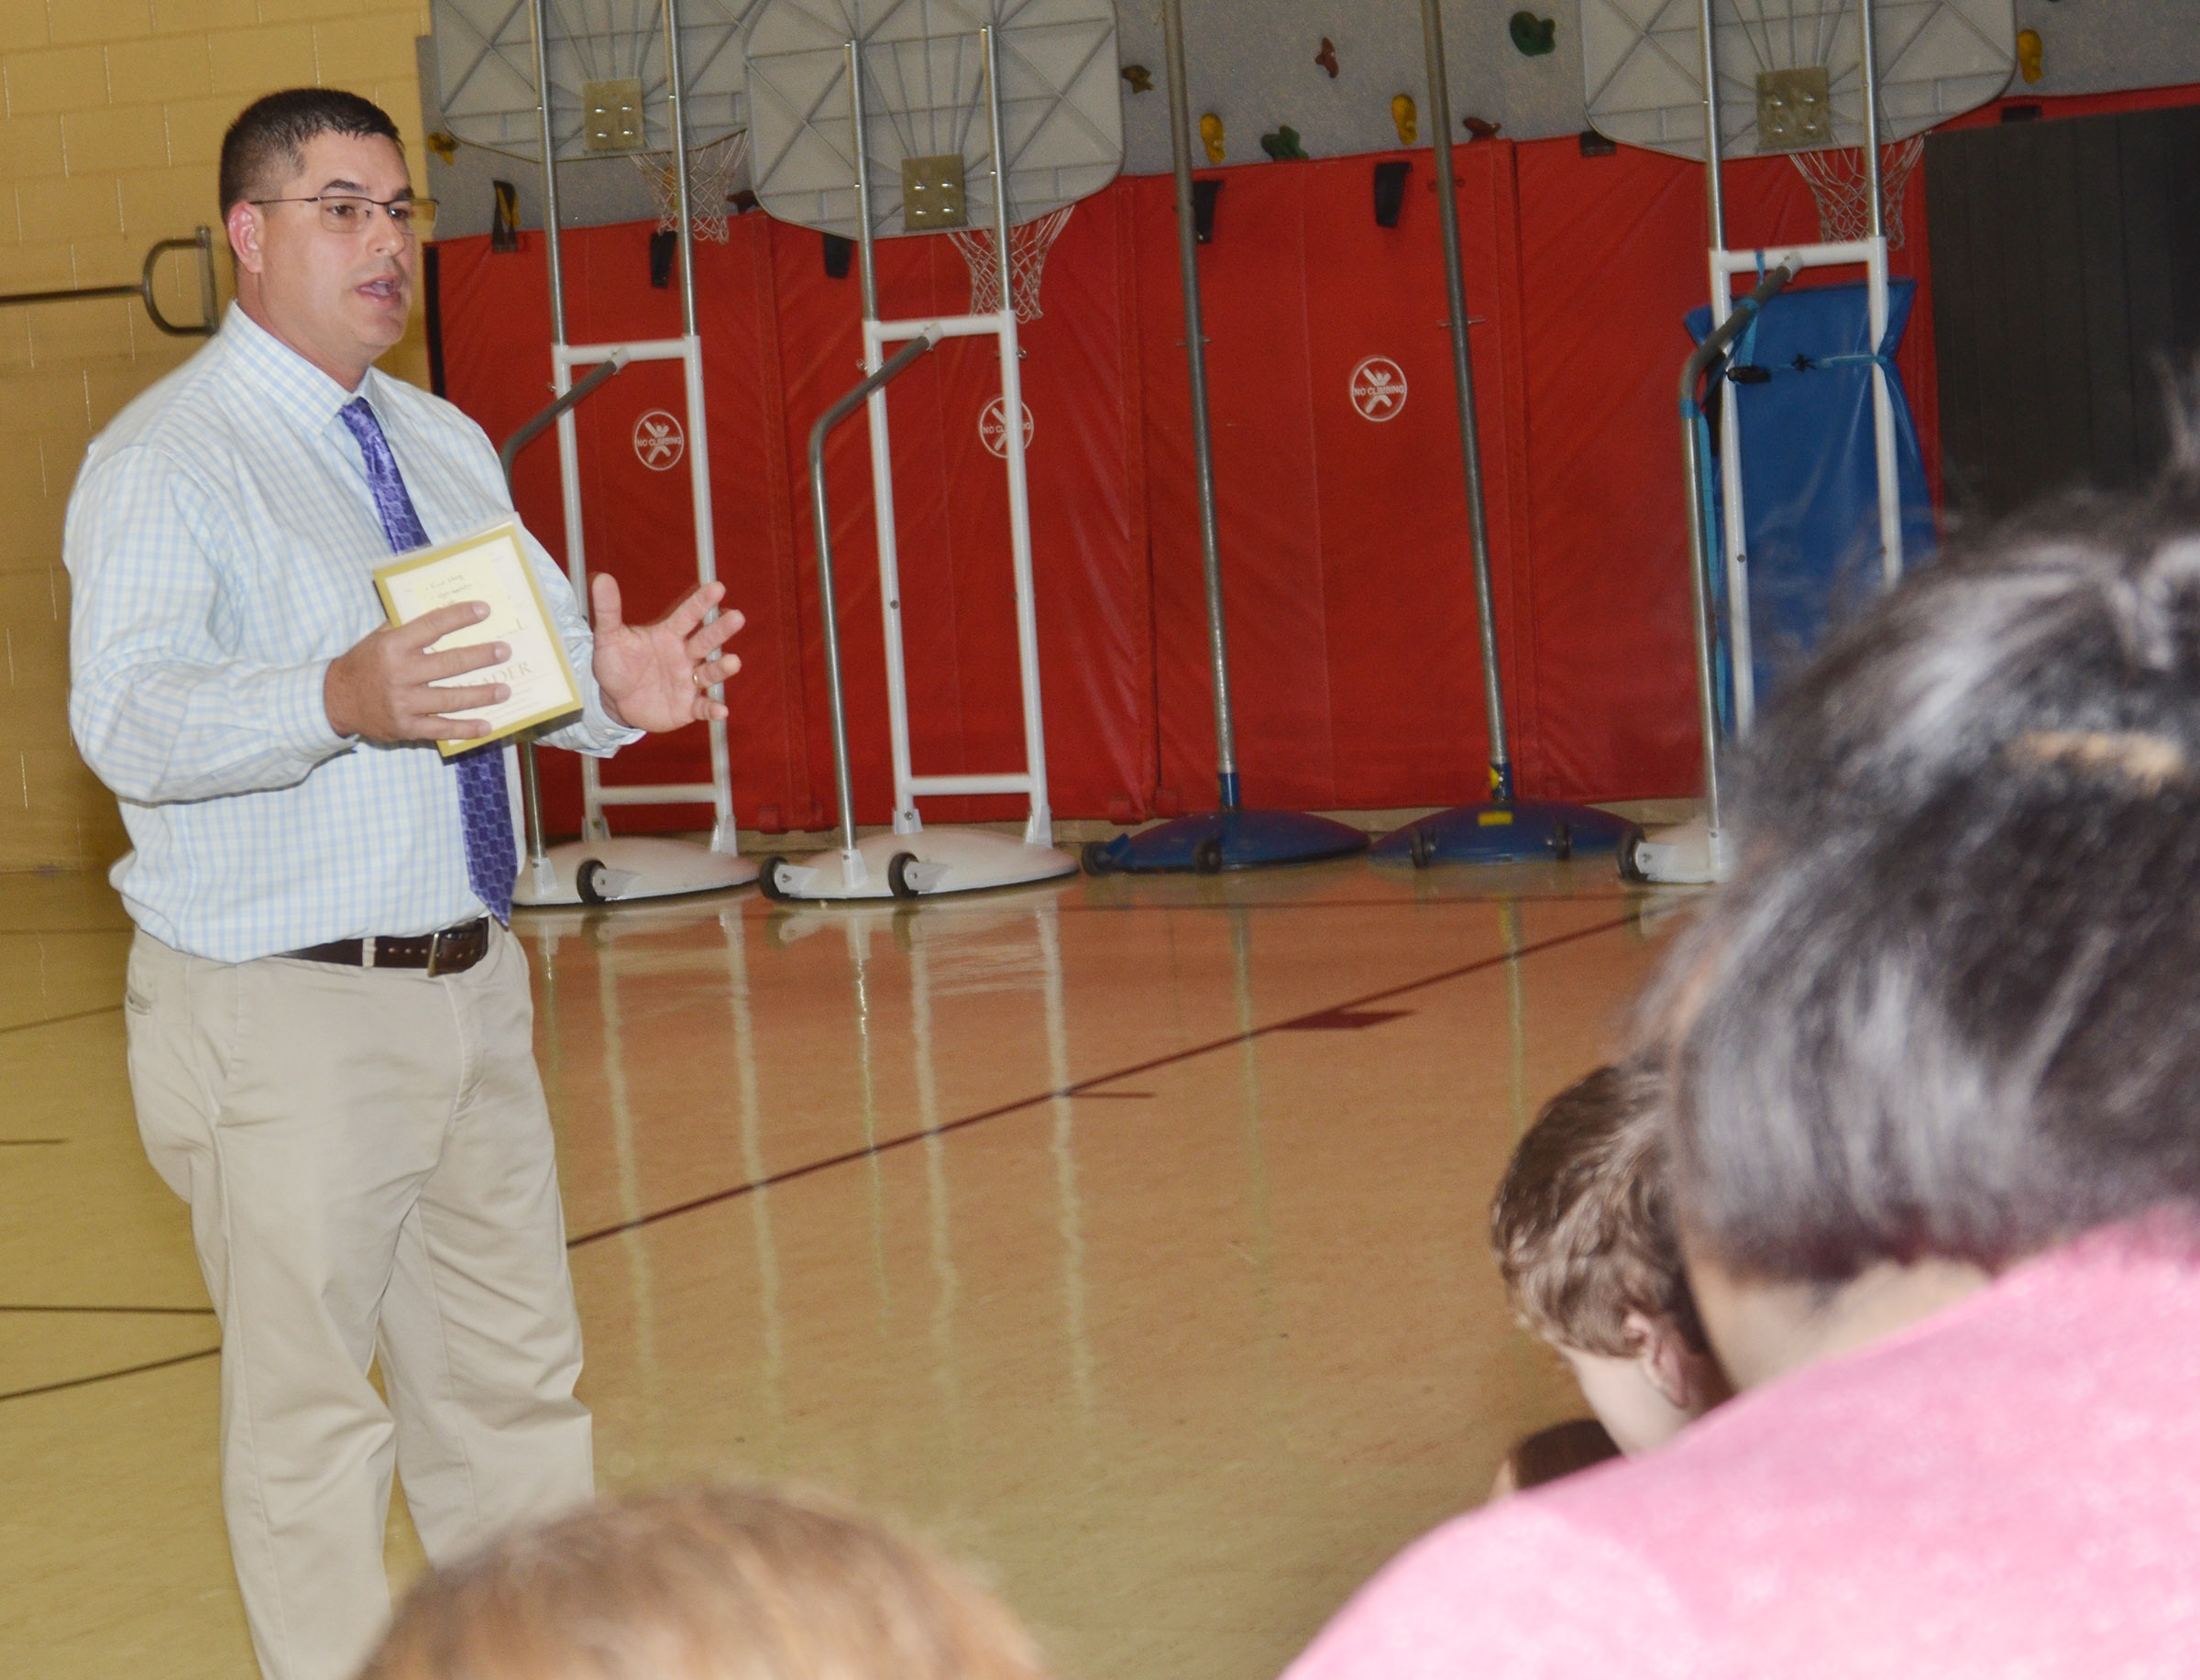 Campbellsville Independent Schools Superintendent Kirby Smith encourages CMS students to always do their best and take advantage of the help their teachers offer to them.